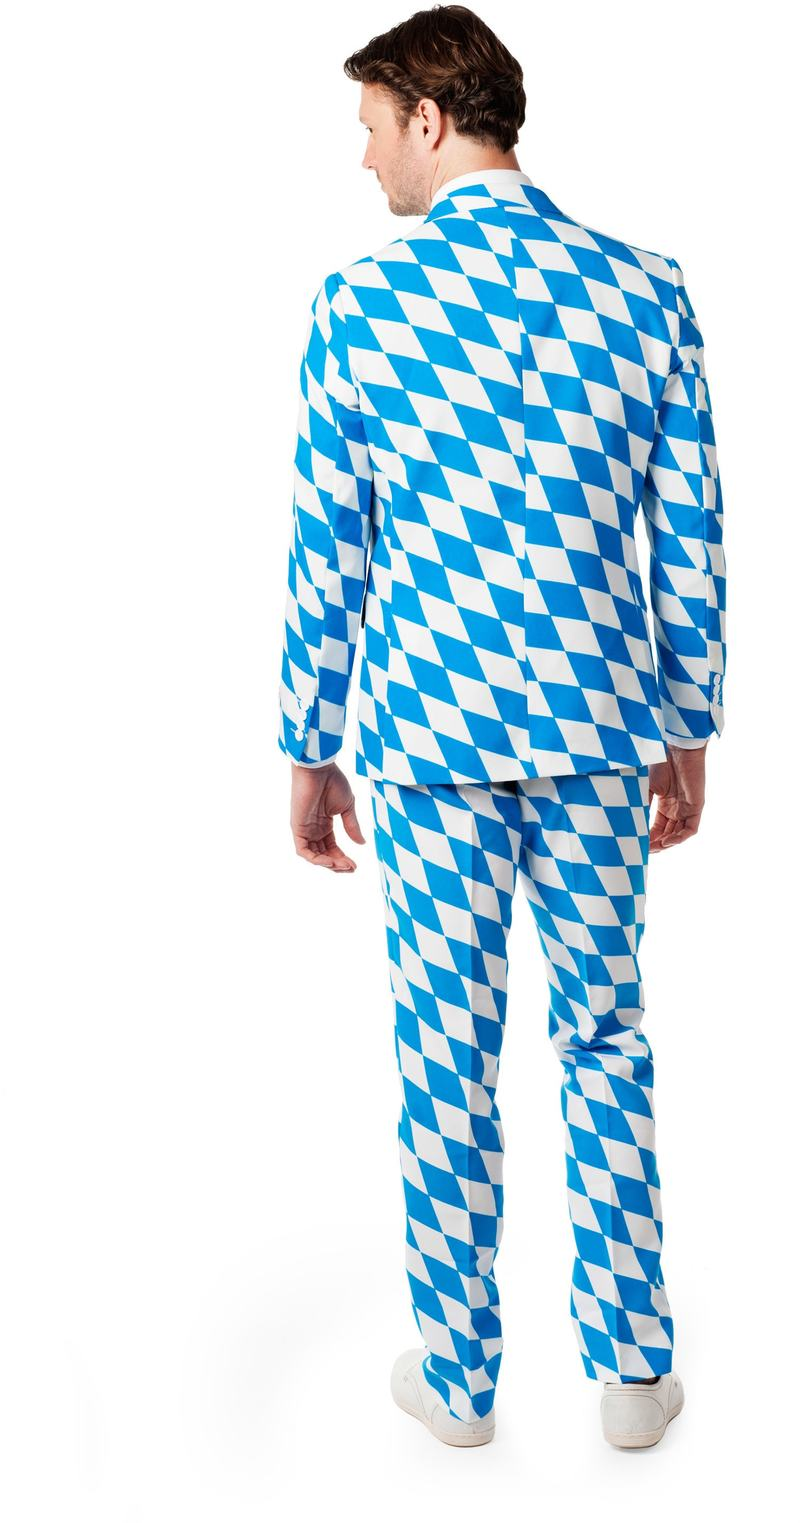 OppoSuits The Bavarian Suit photo 1